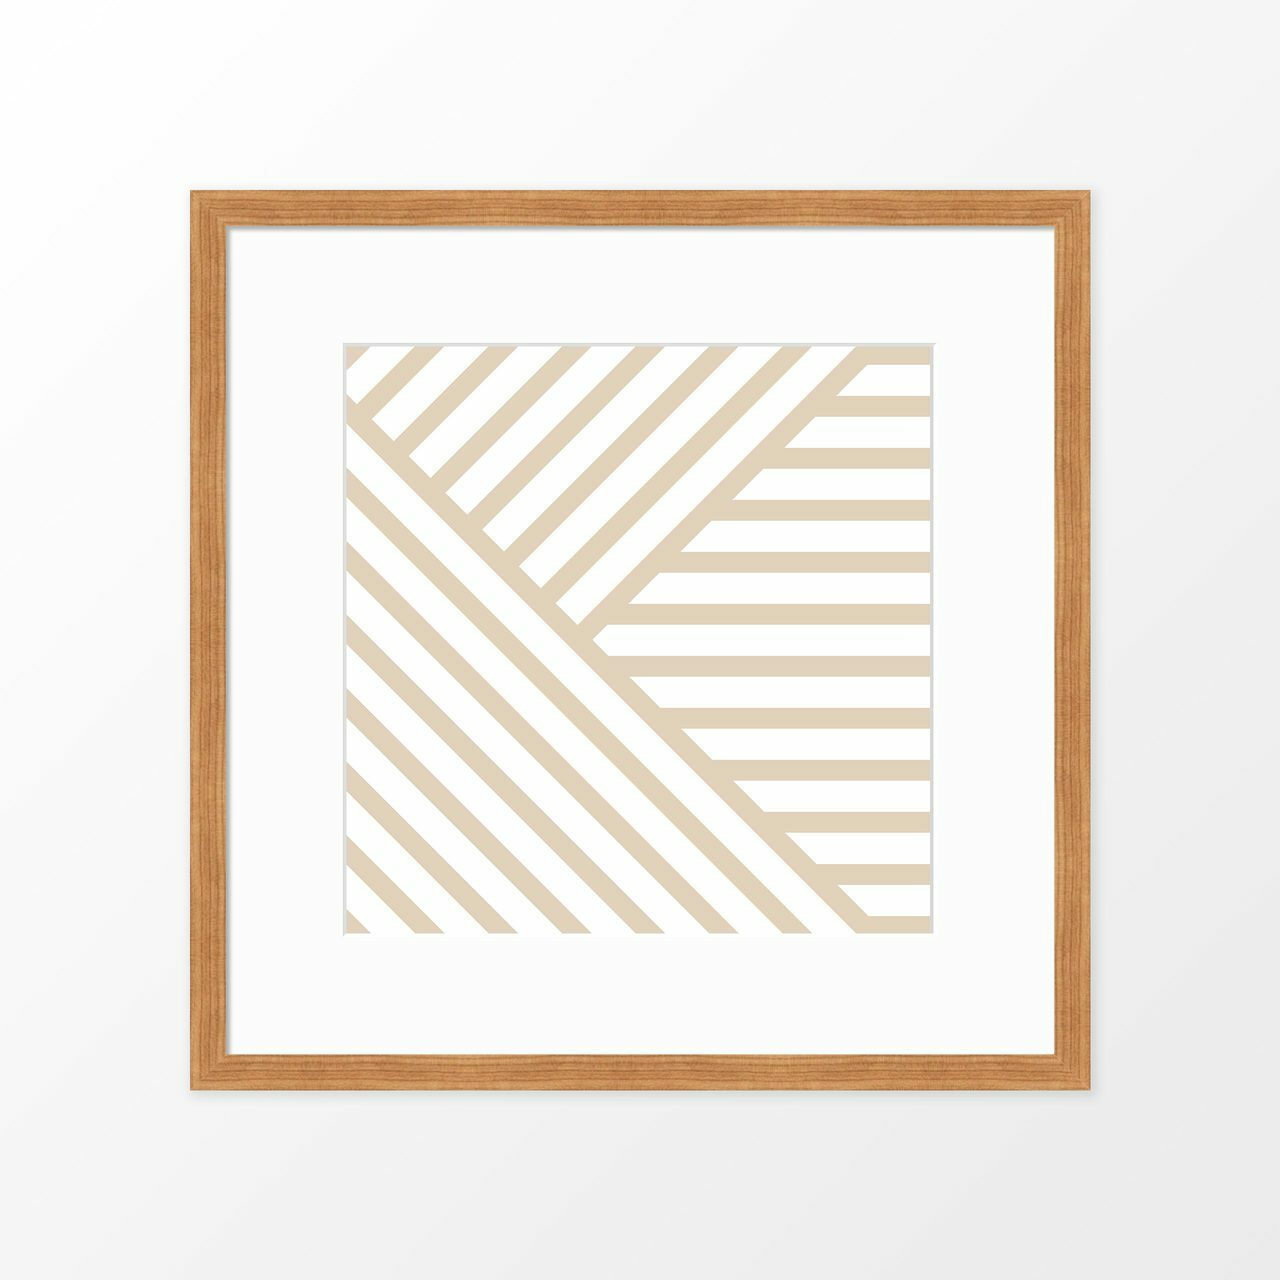 'Lines on Lines I' Modern Geometric Art Poster from The Printed Home (Printable)